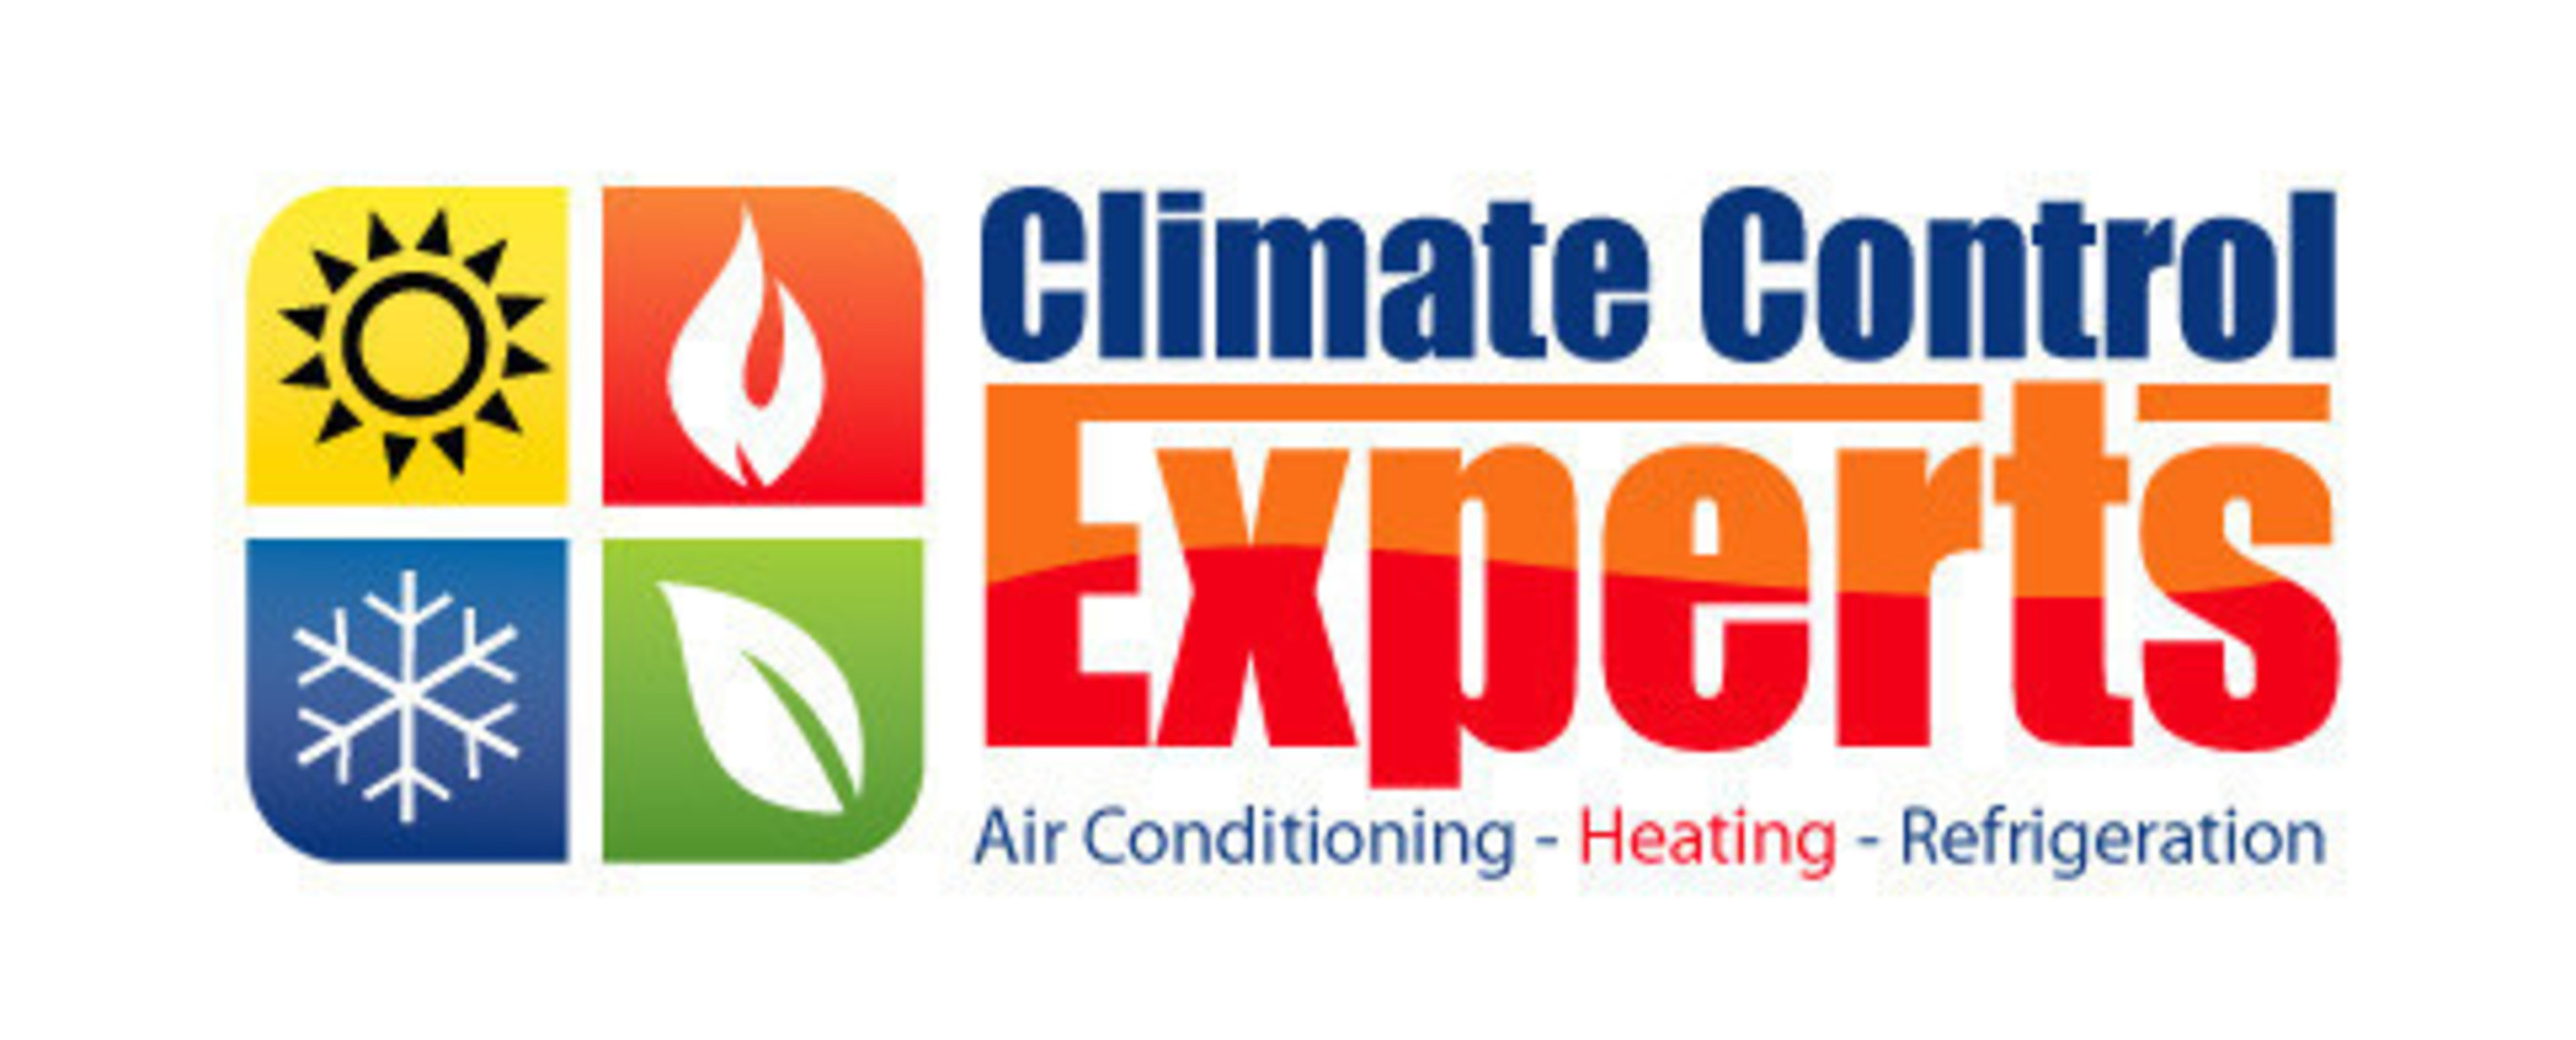 Climate Control Experts: One of 2016's Fastest Growing Companies According to Inc. 5000